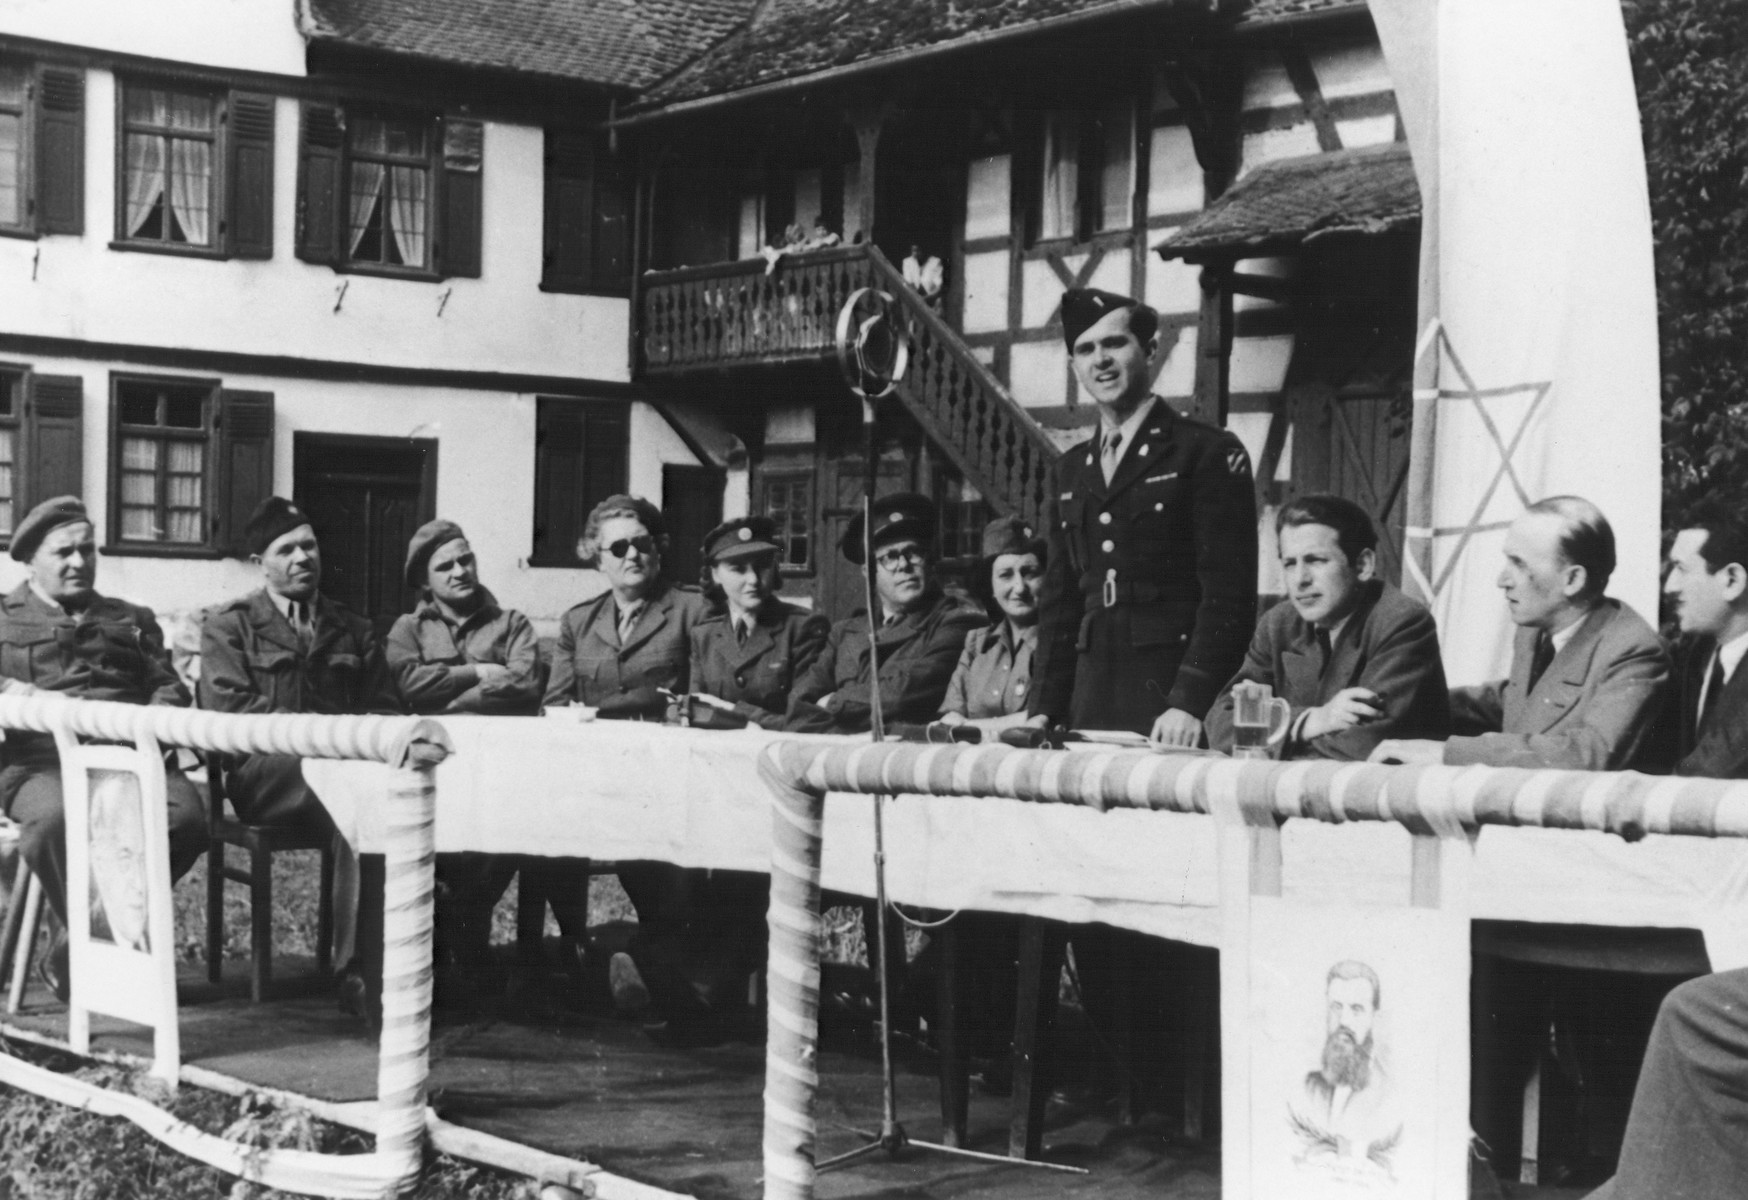 Chaplain Mayer Abramowitz addresses an outdoor Zionist meeting in Germany.